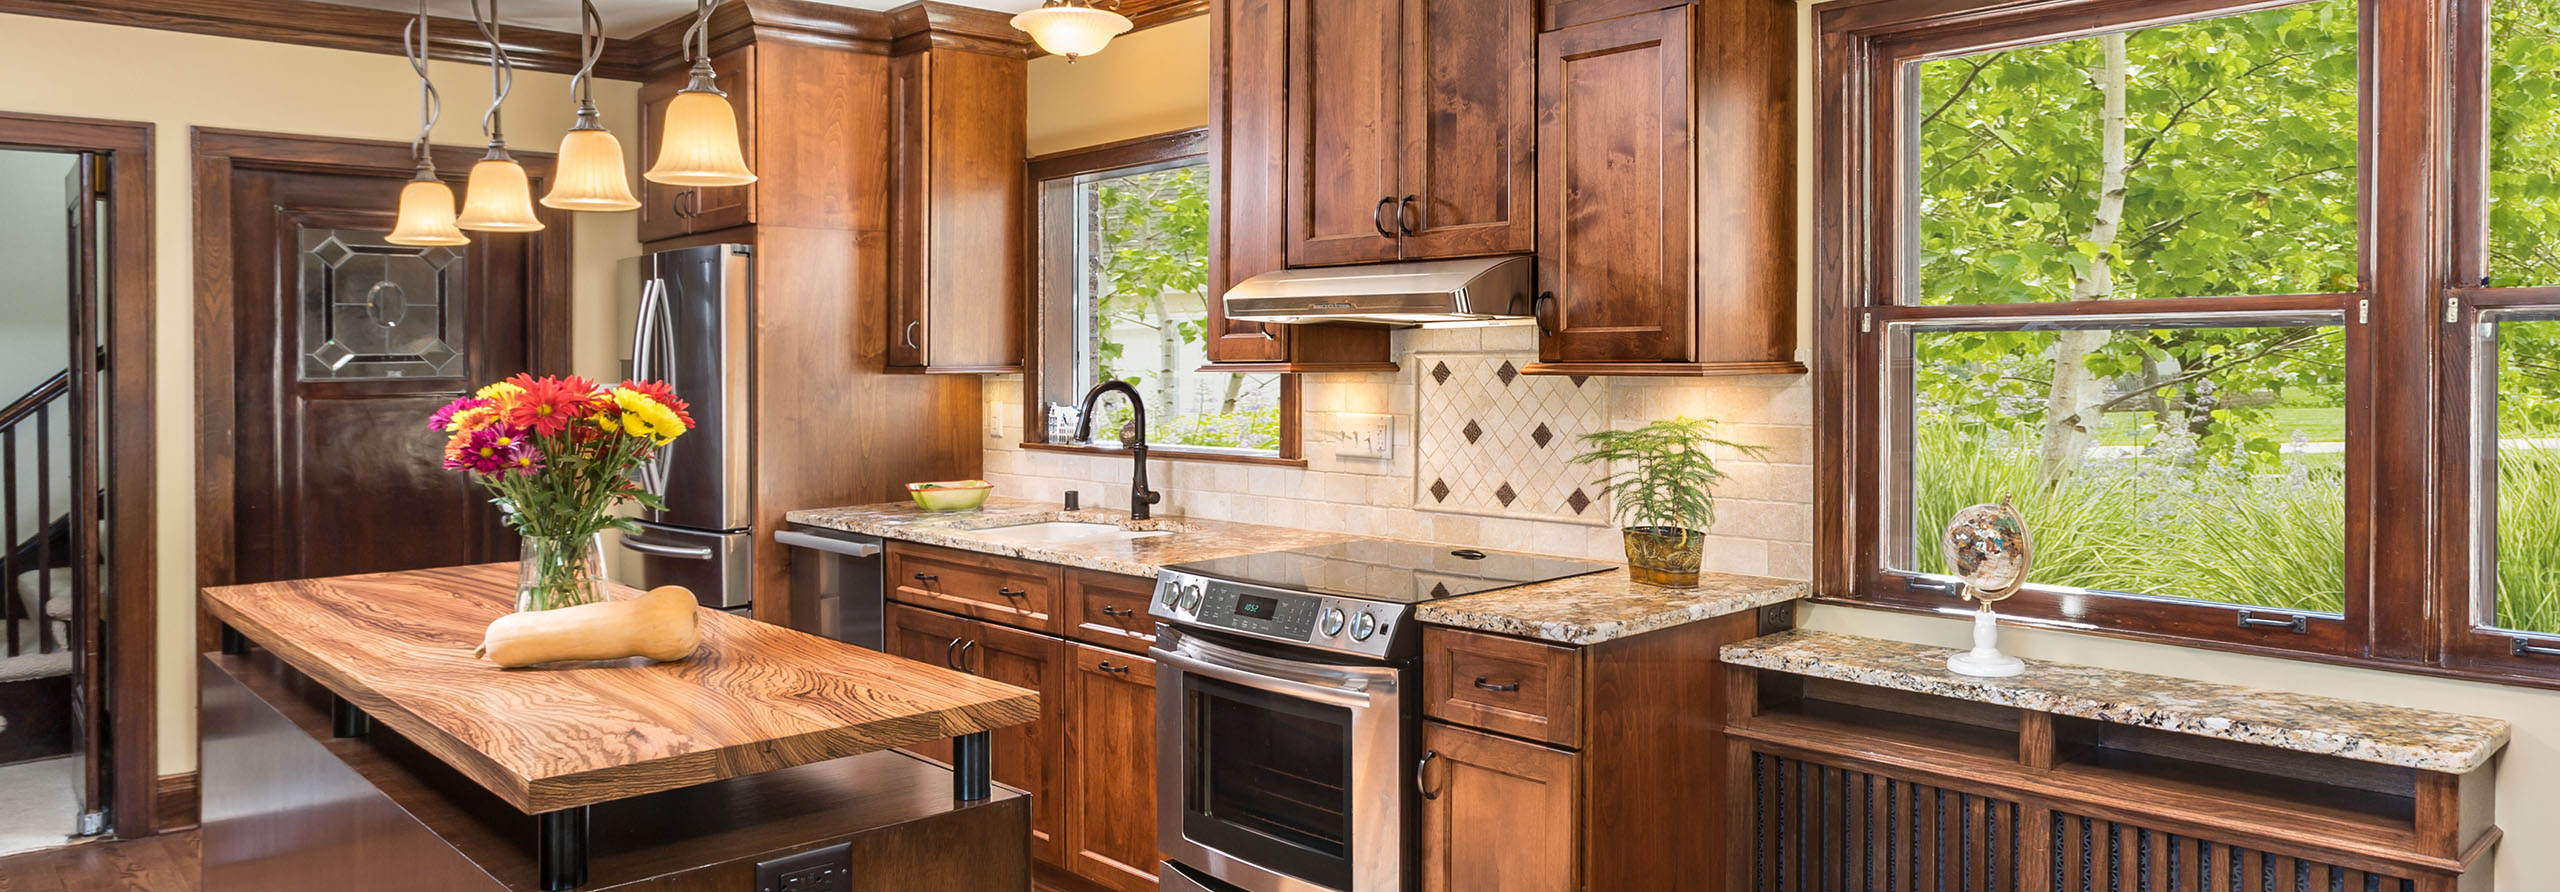 whitefish bay kitchen remodeling with zebrawood island